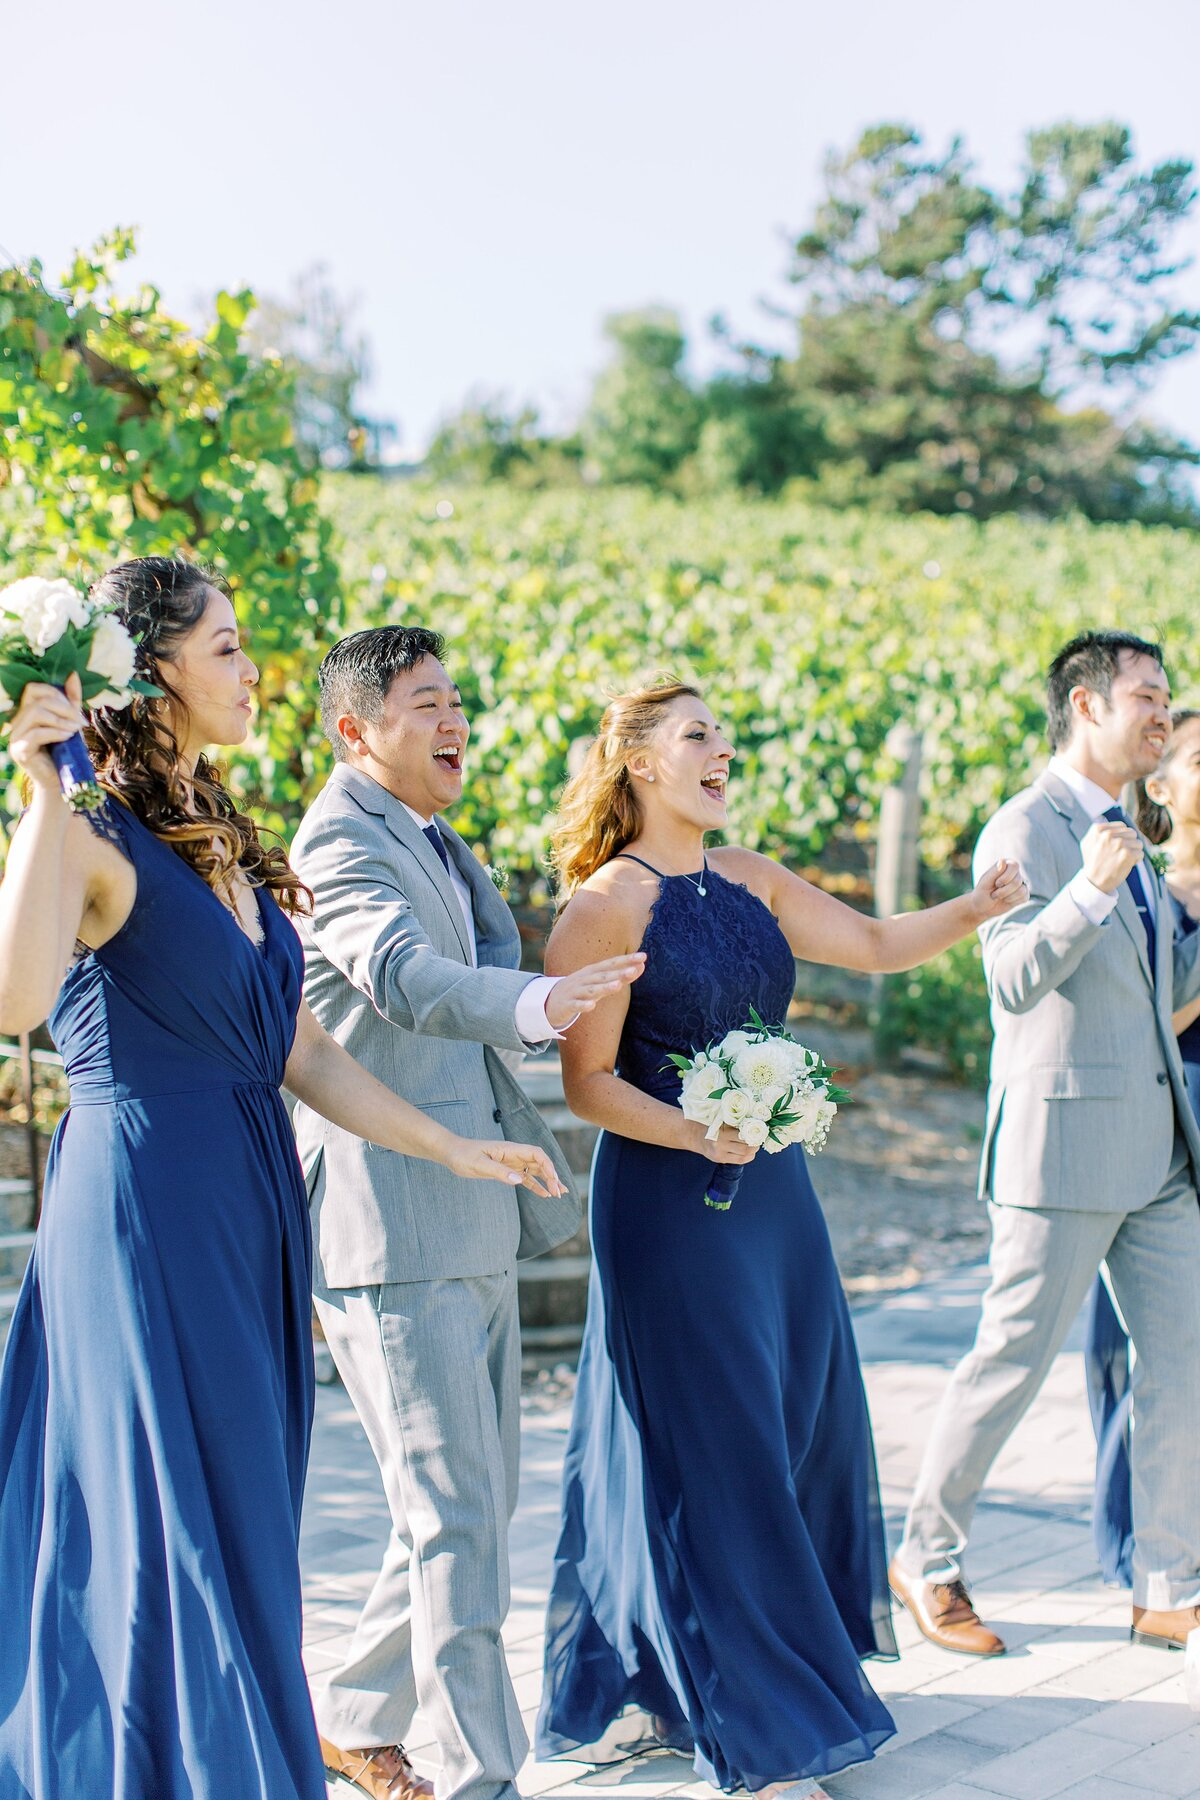 20190928Cammane and Simon's Vineyard Wedding_Nella Terra Cellars_Sunol_Bethany Picone Photography - 093_WEB